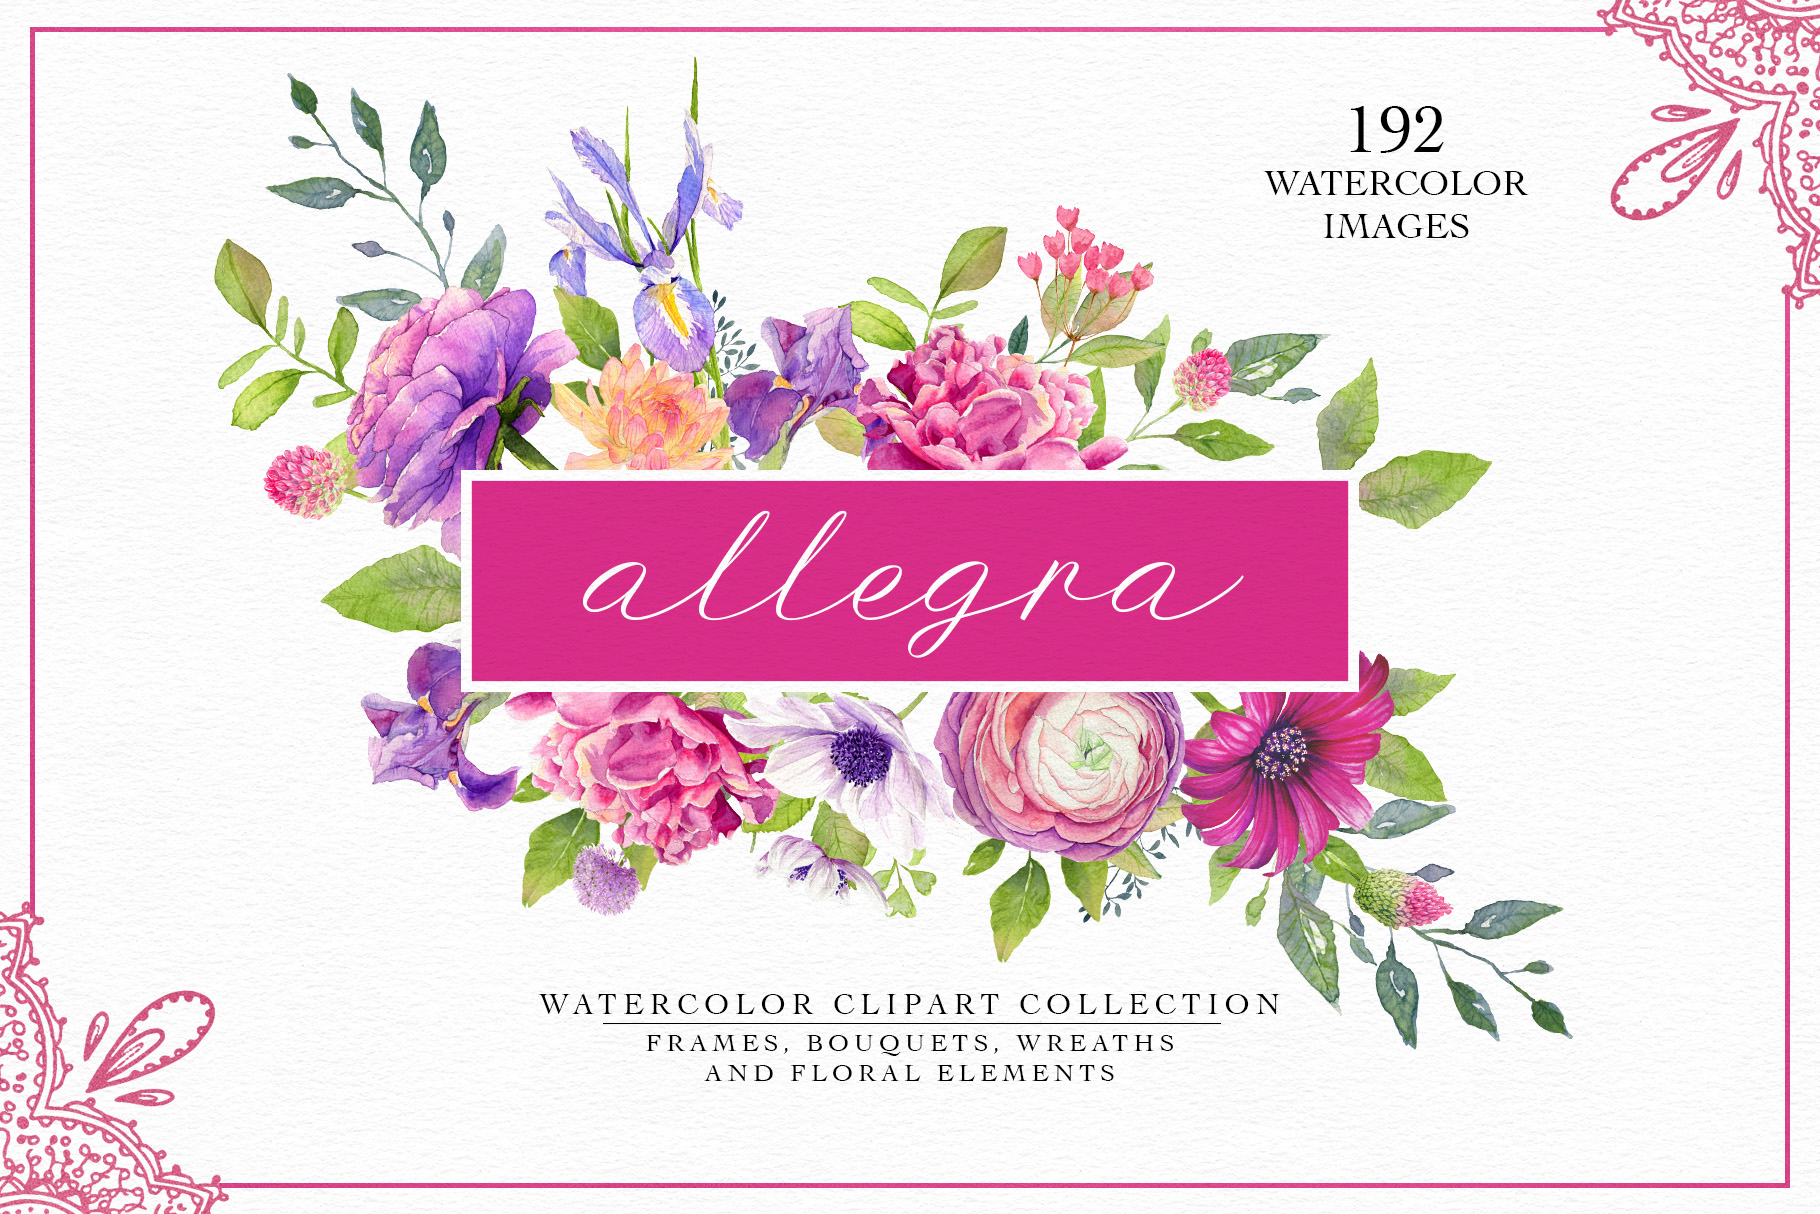 Allegra Watercolor Clipart Collection.